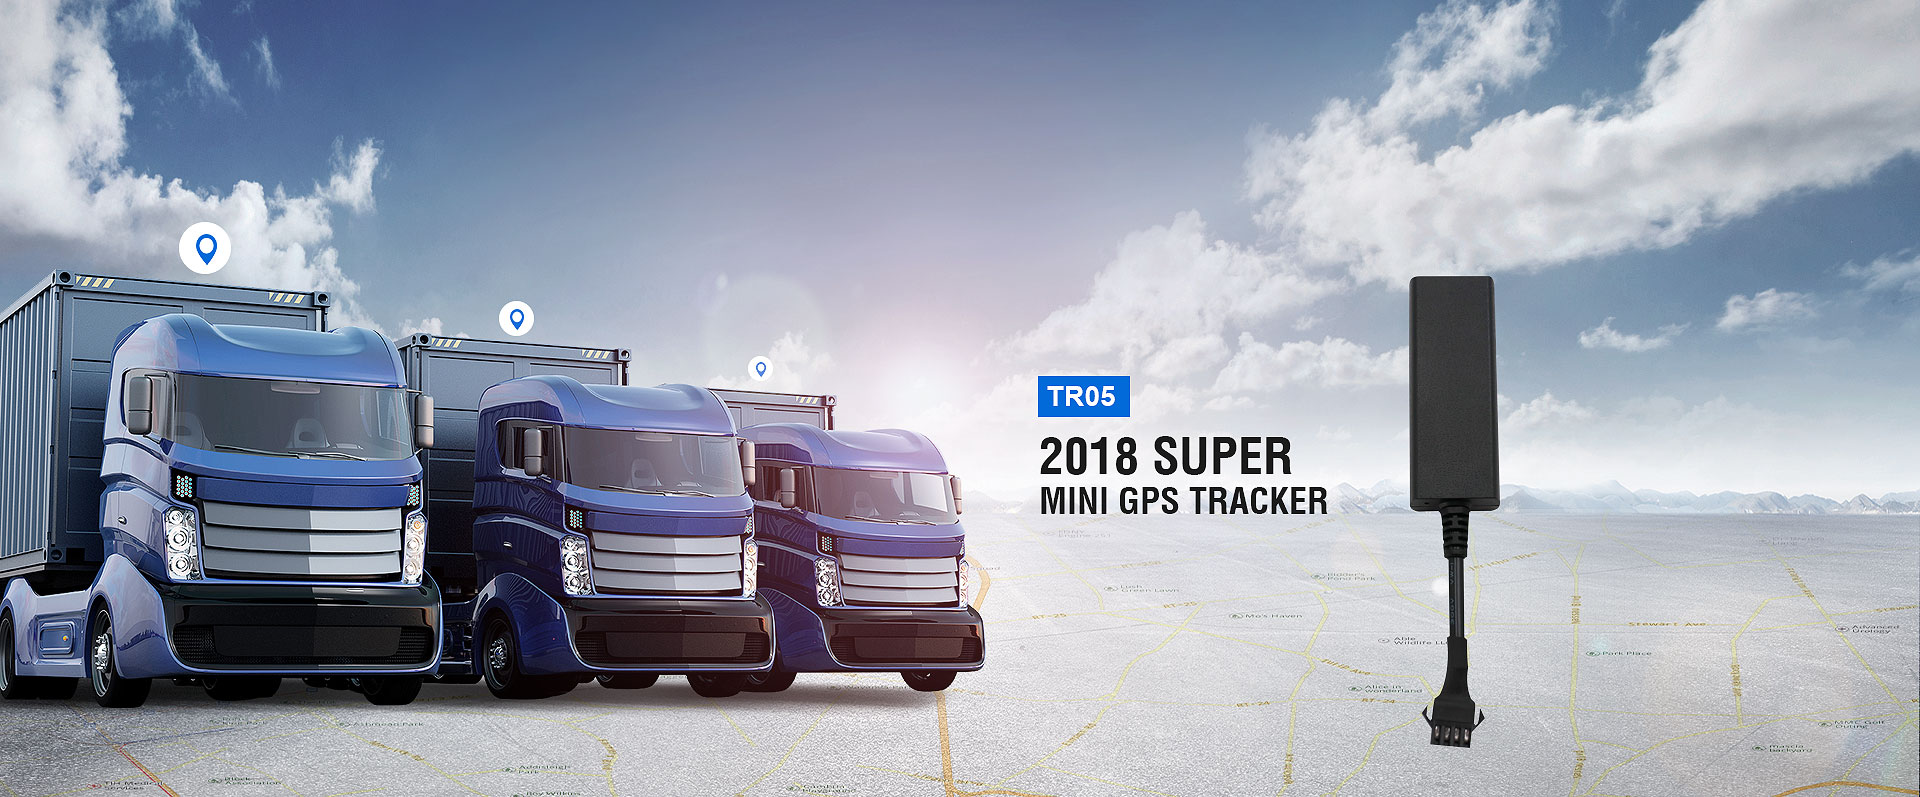 Where to buy vehicle gps tracker